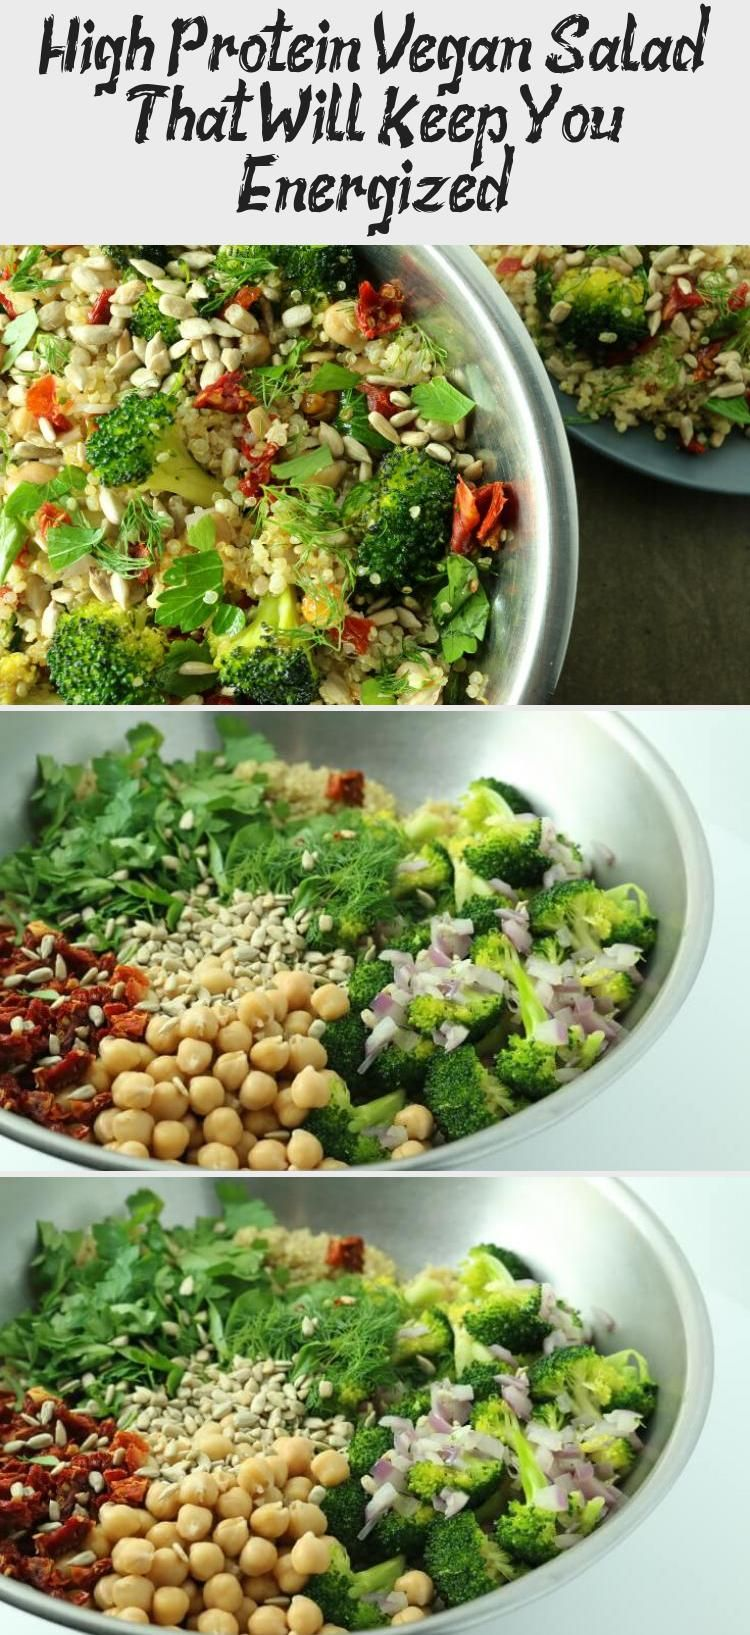 Photo of Quick and easy high protein vegan salad made with quinoa, broccoli, chickpeas, s…